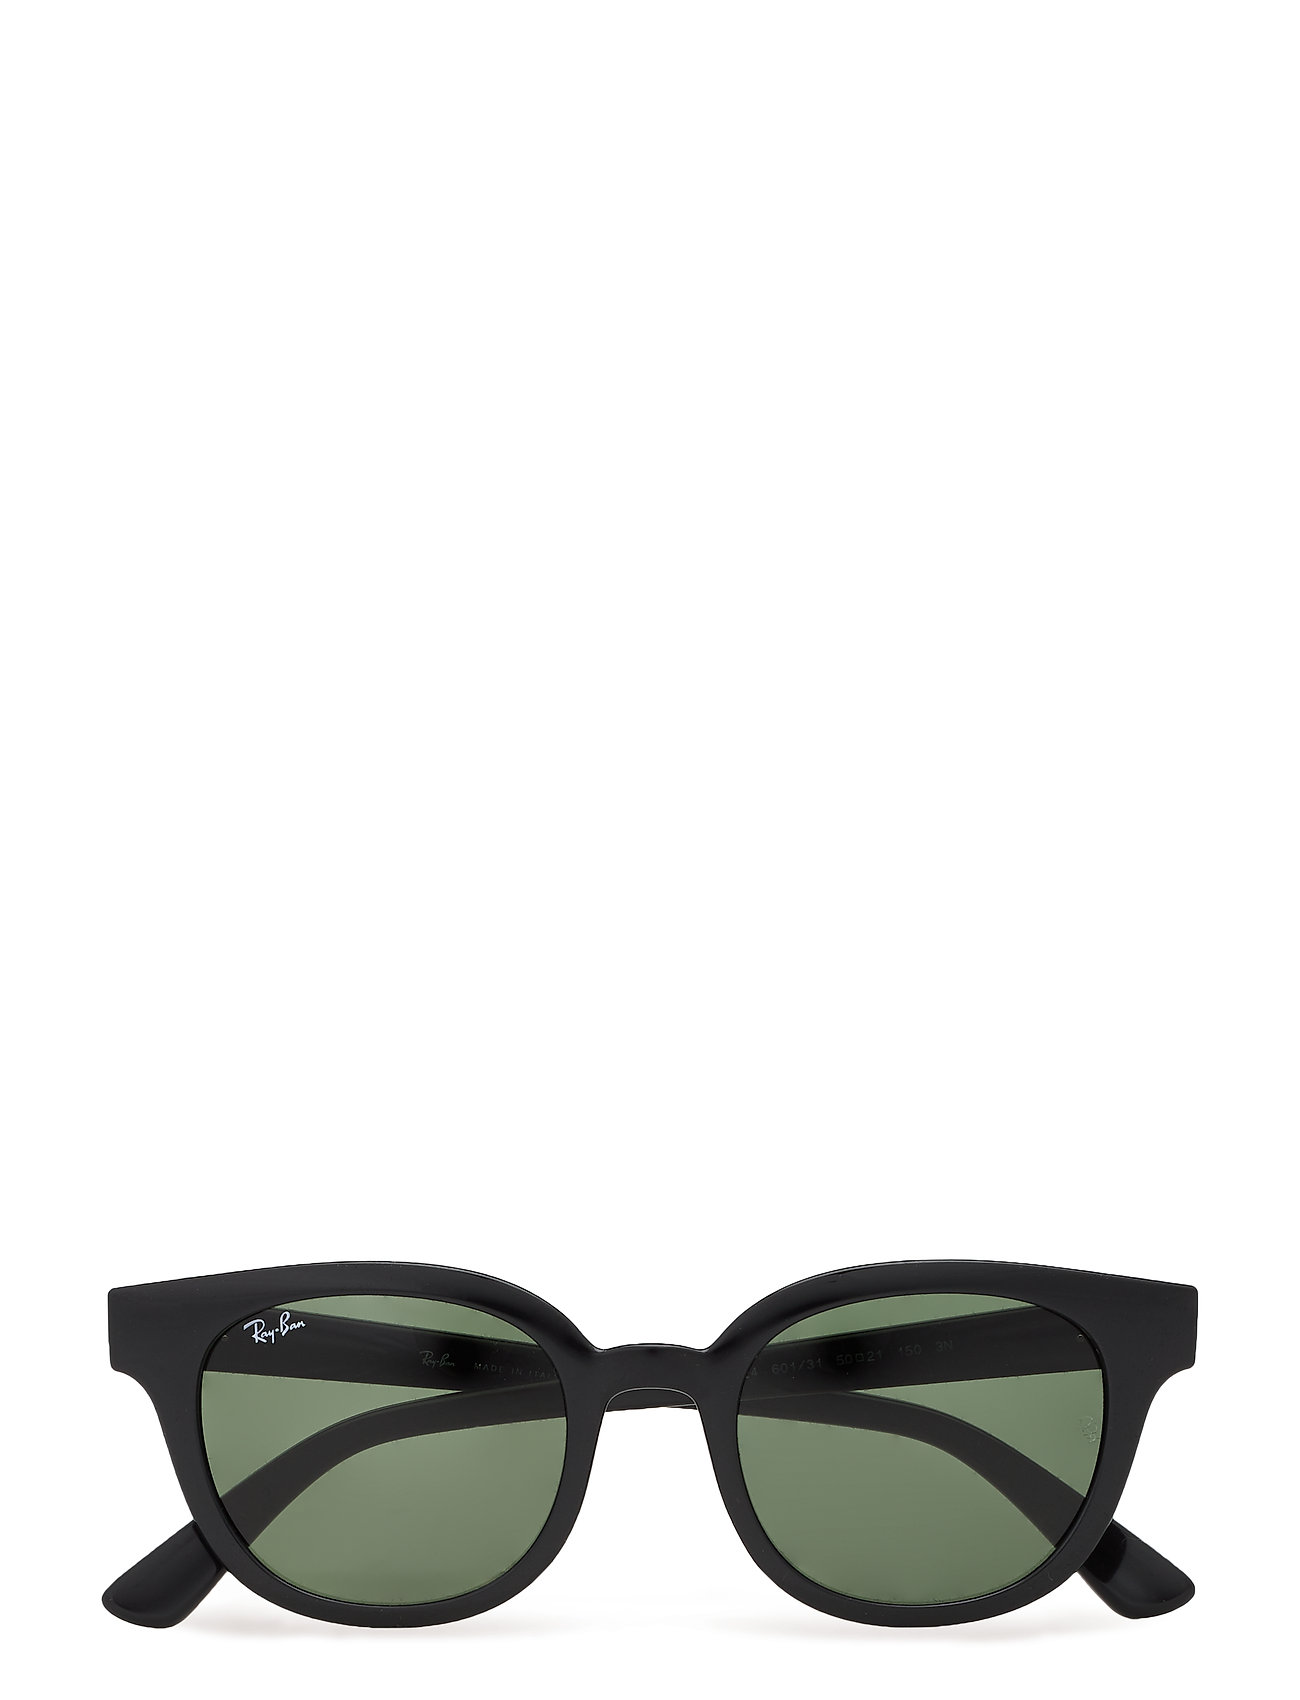 Image of Ray-Ban Sunglasses Solbriller Sort Ray-Ban (3326811539)